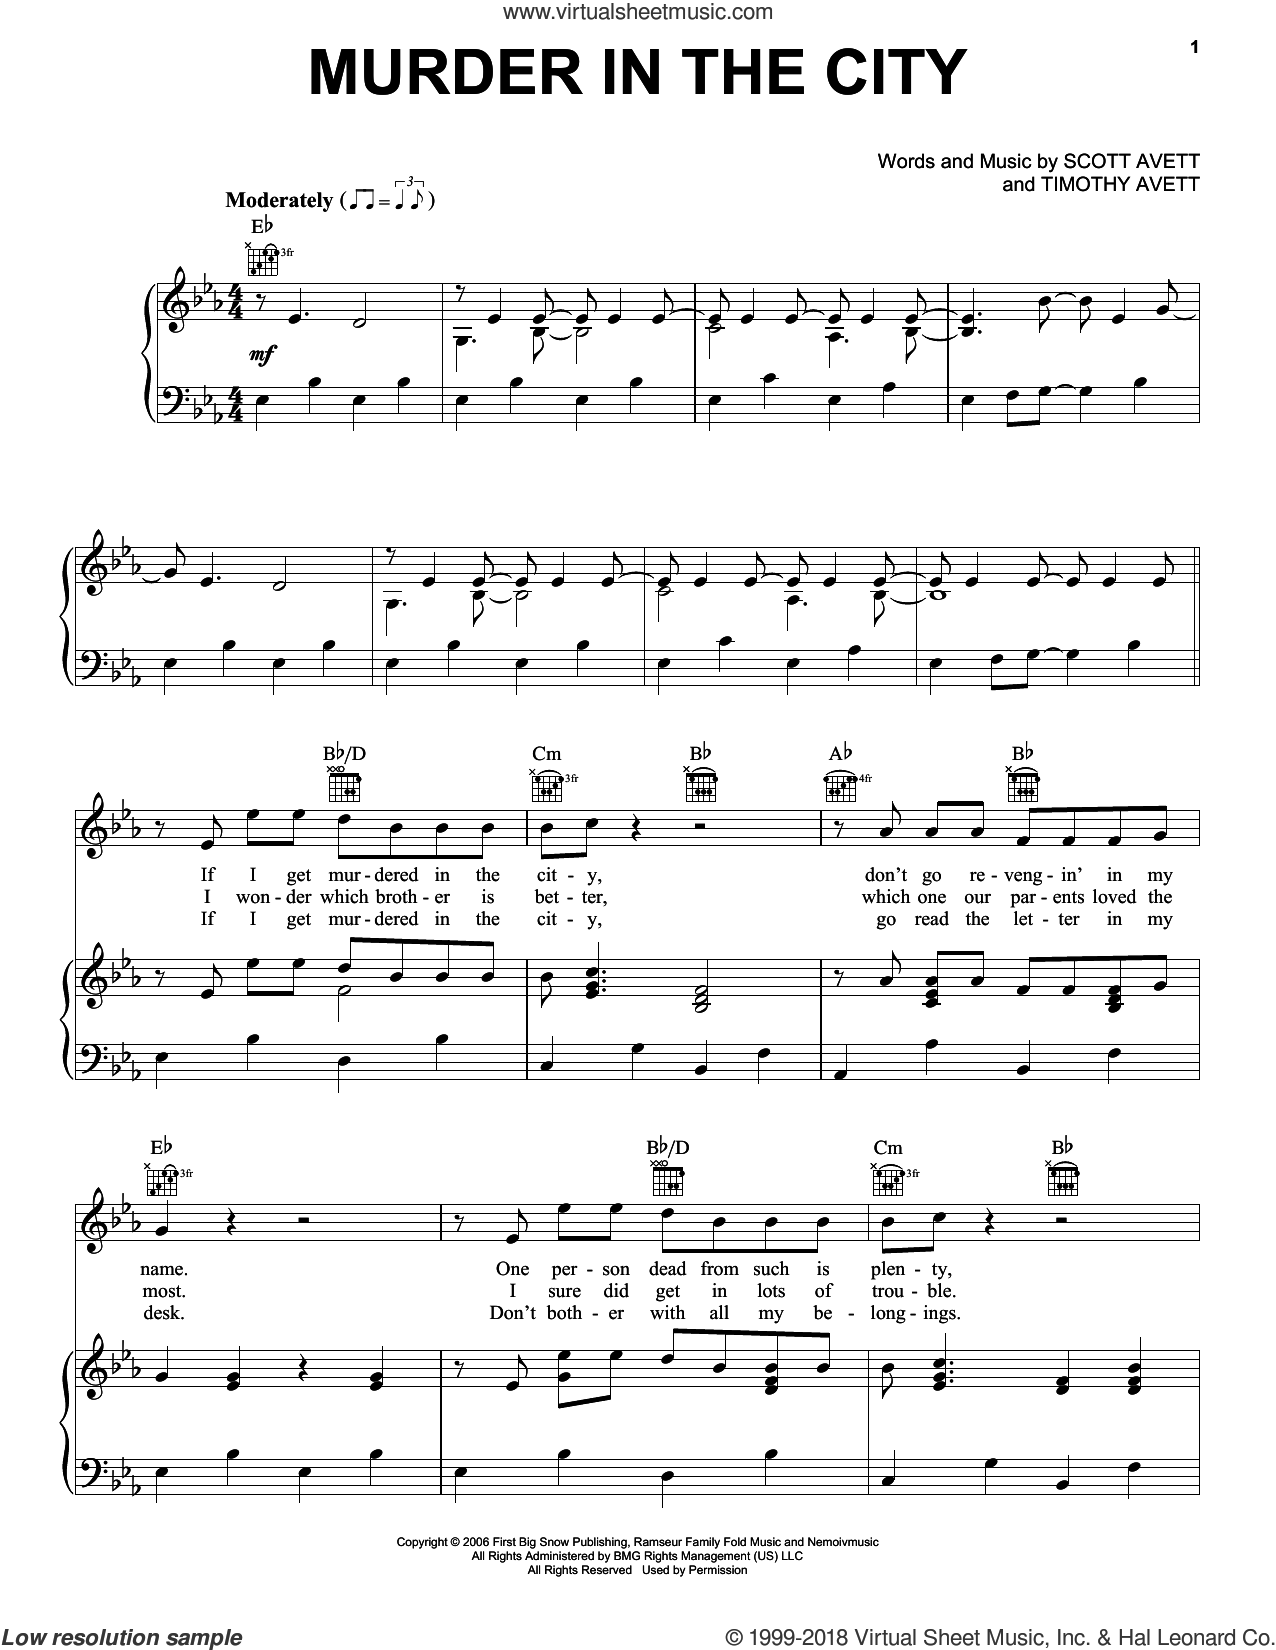 Murder In The City sheet music for voice, piano or guitar by The Avett Brothers, Avett Brothers, Scott Avett and Timothy Avett, intermediate skill level